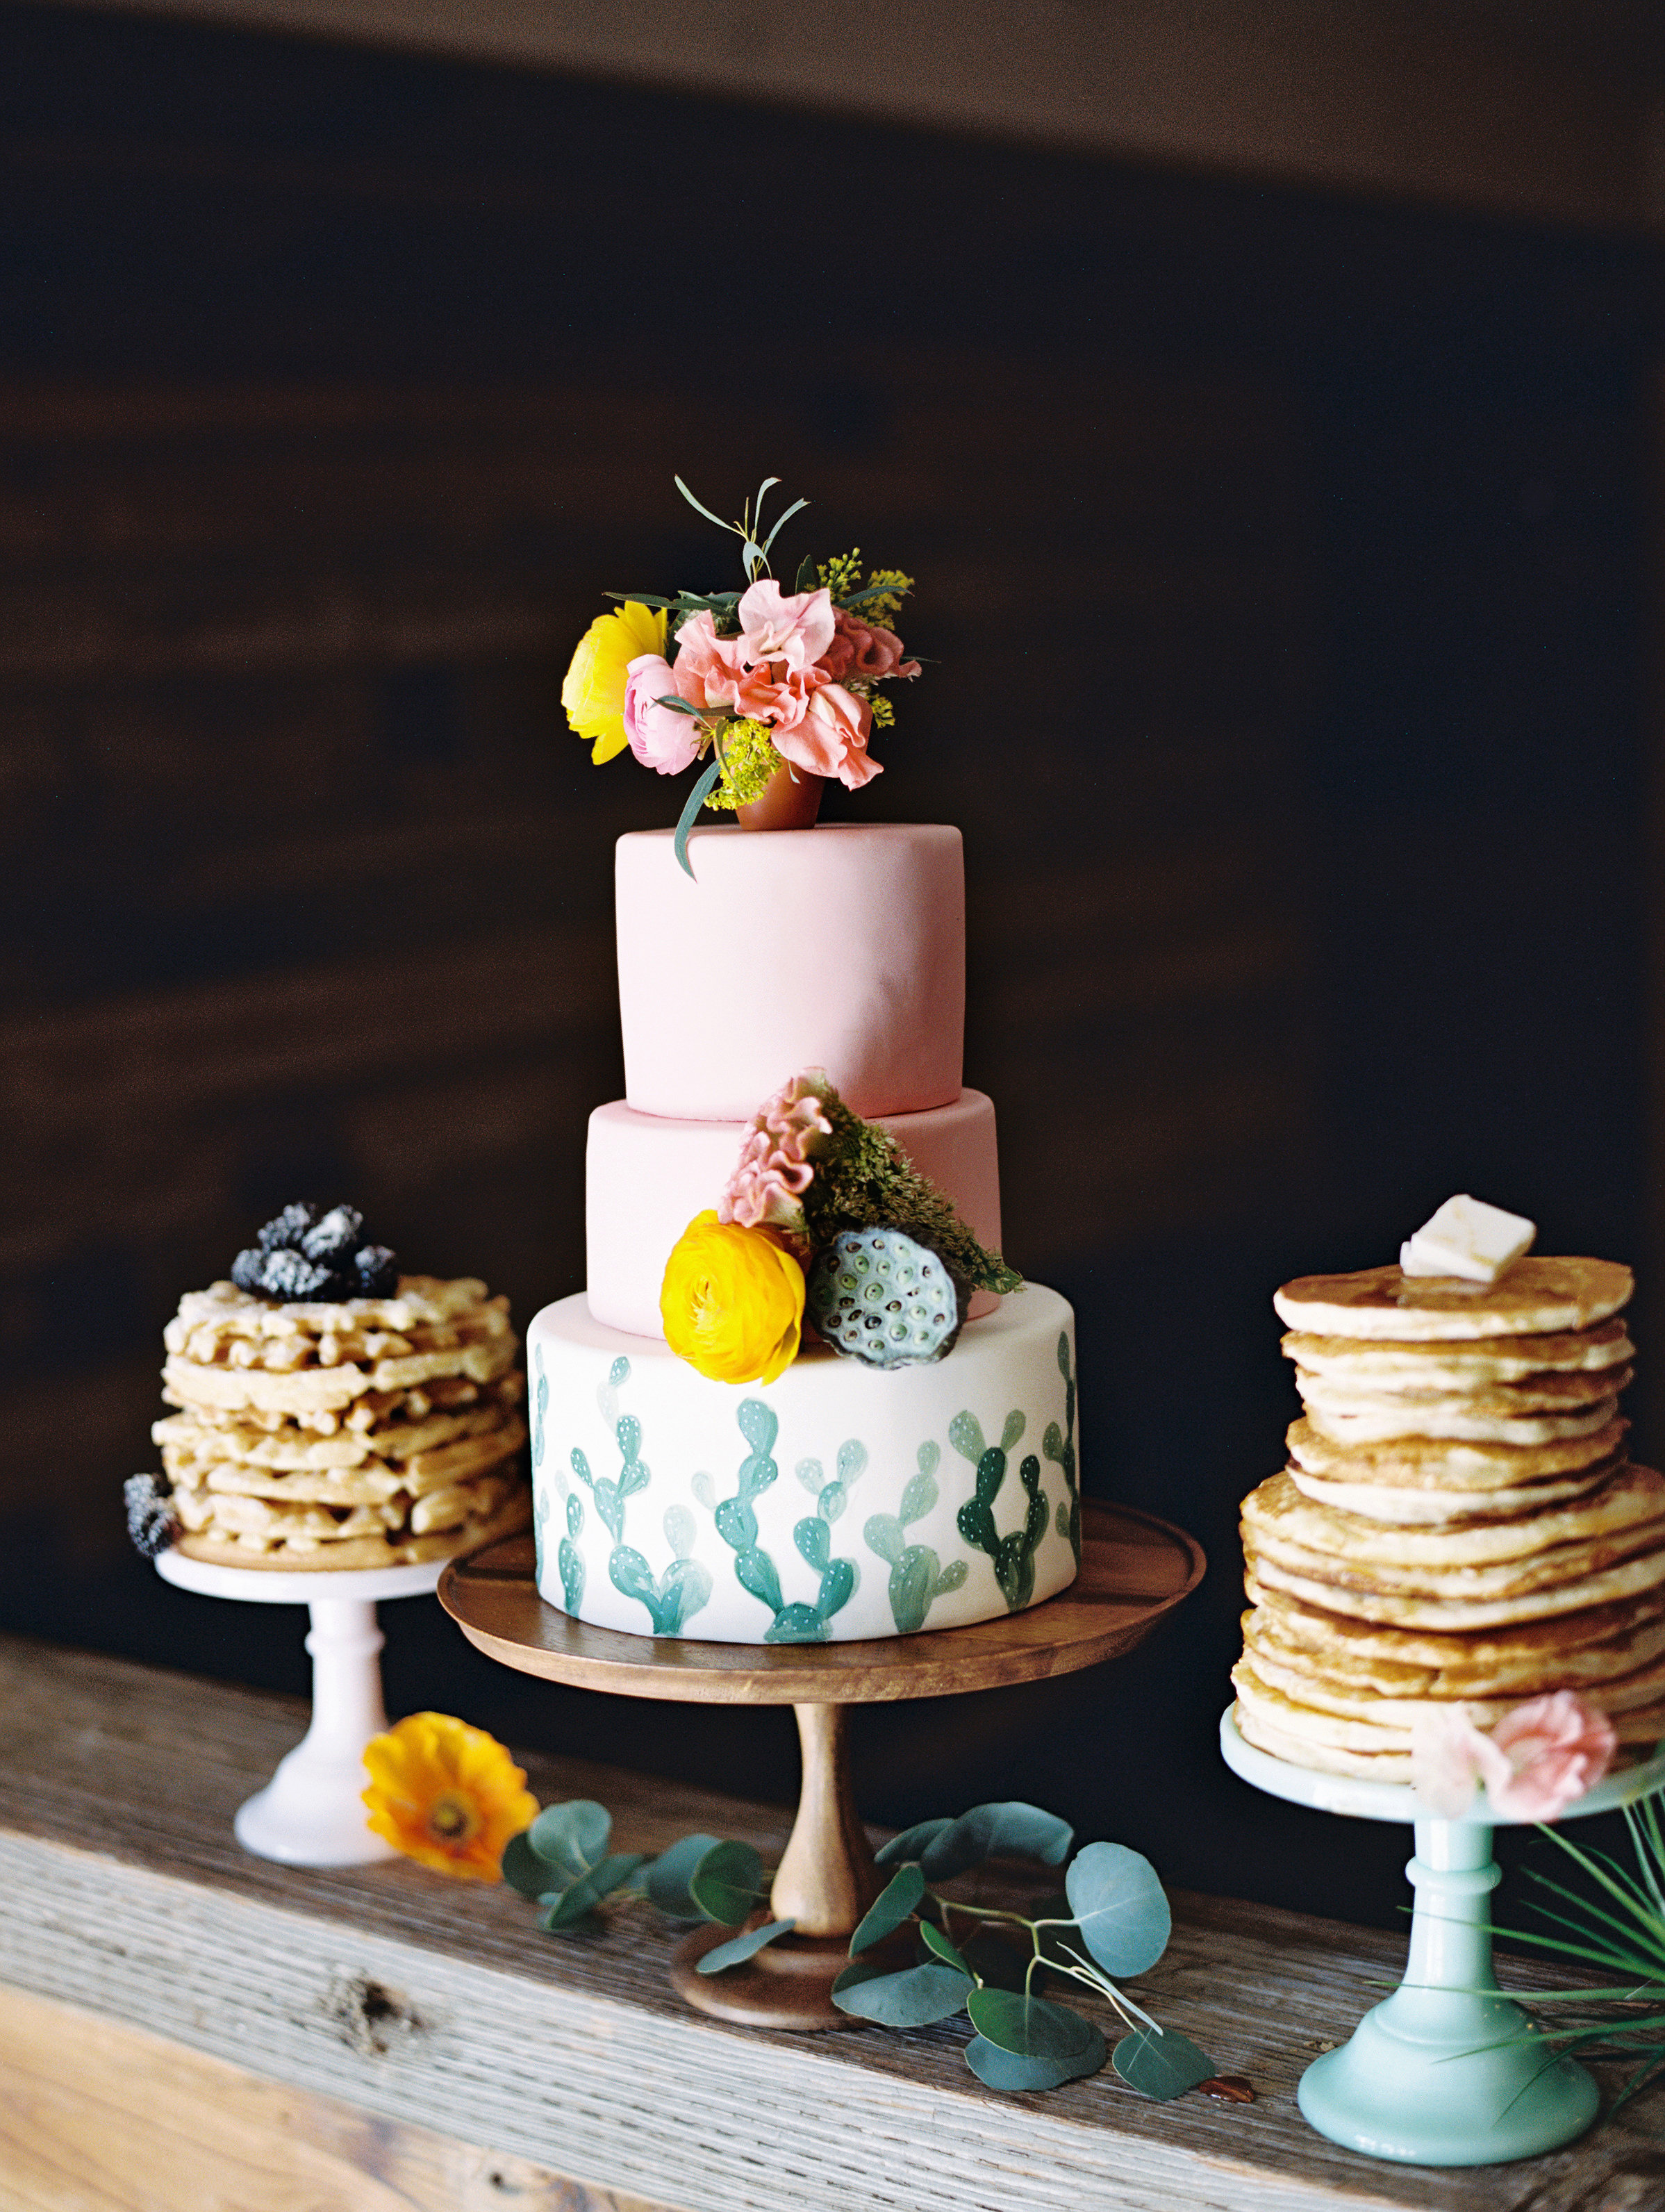 Wedding Cake Decorated with Cactus Motif